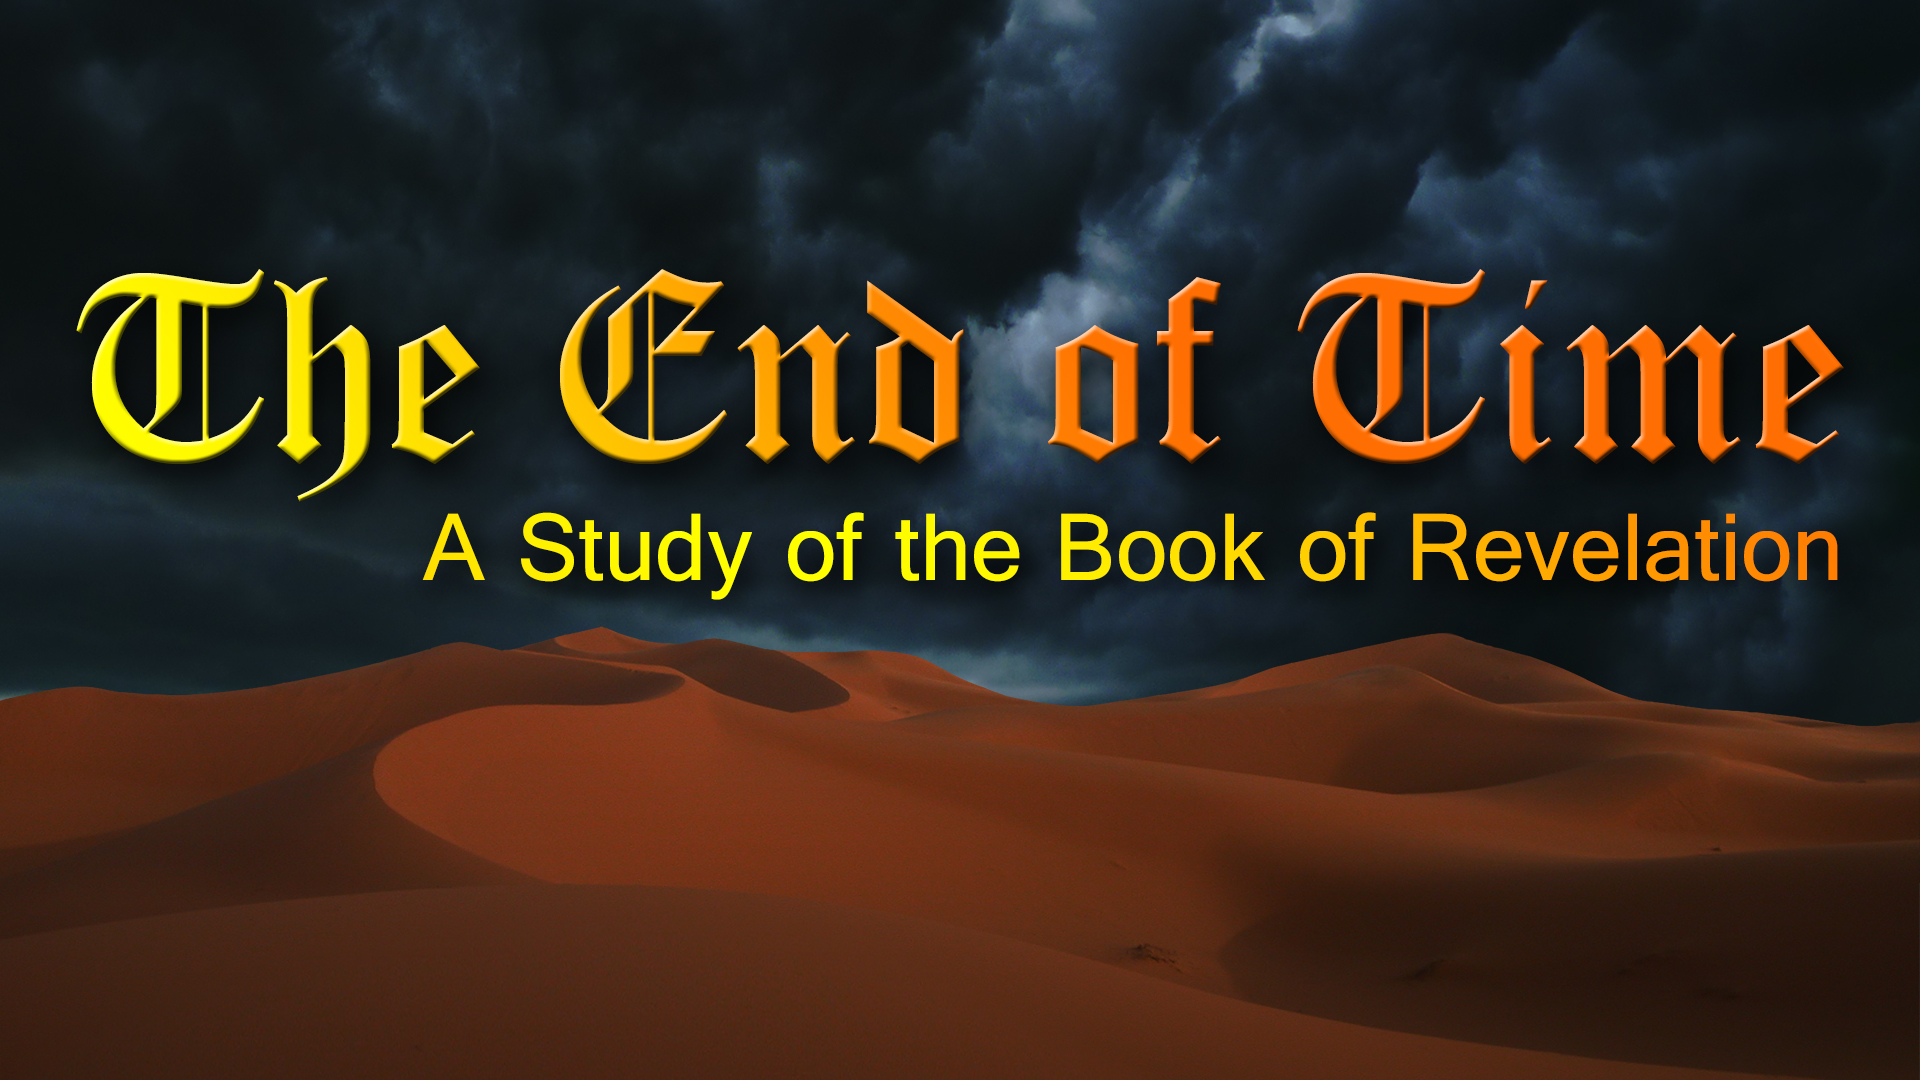 The End of Time: A Study of the Book of Revelation